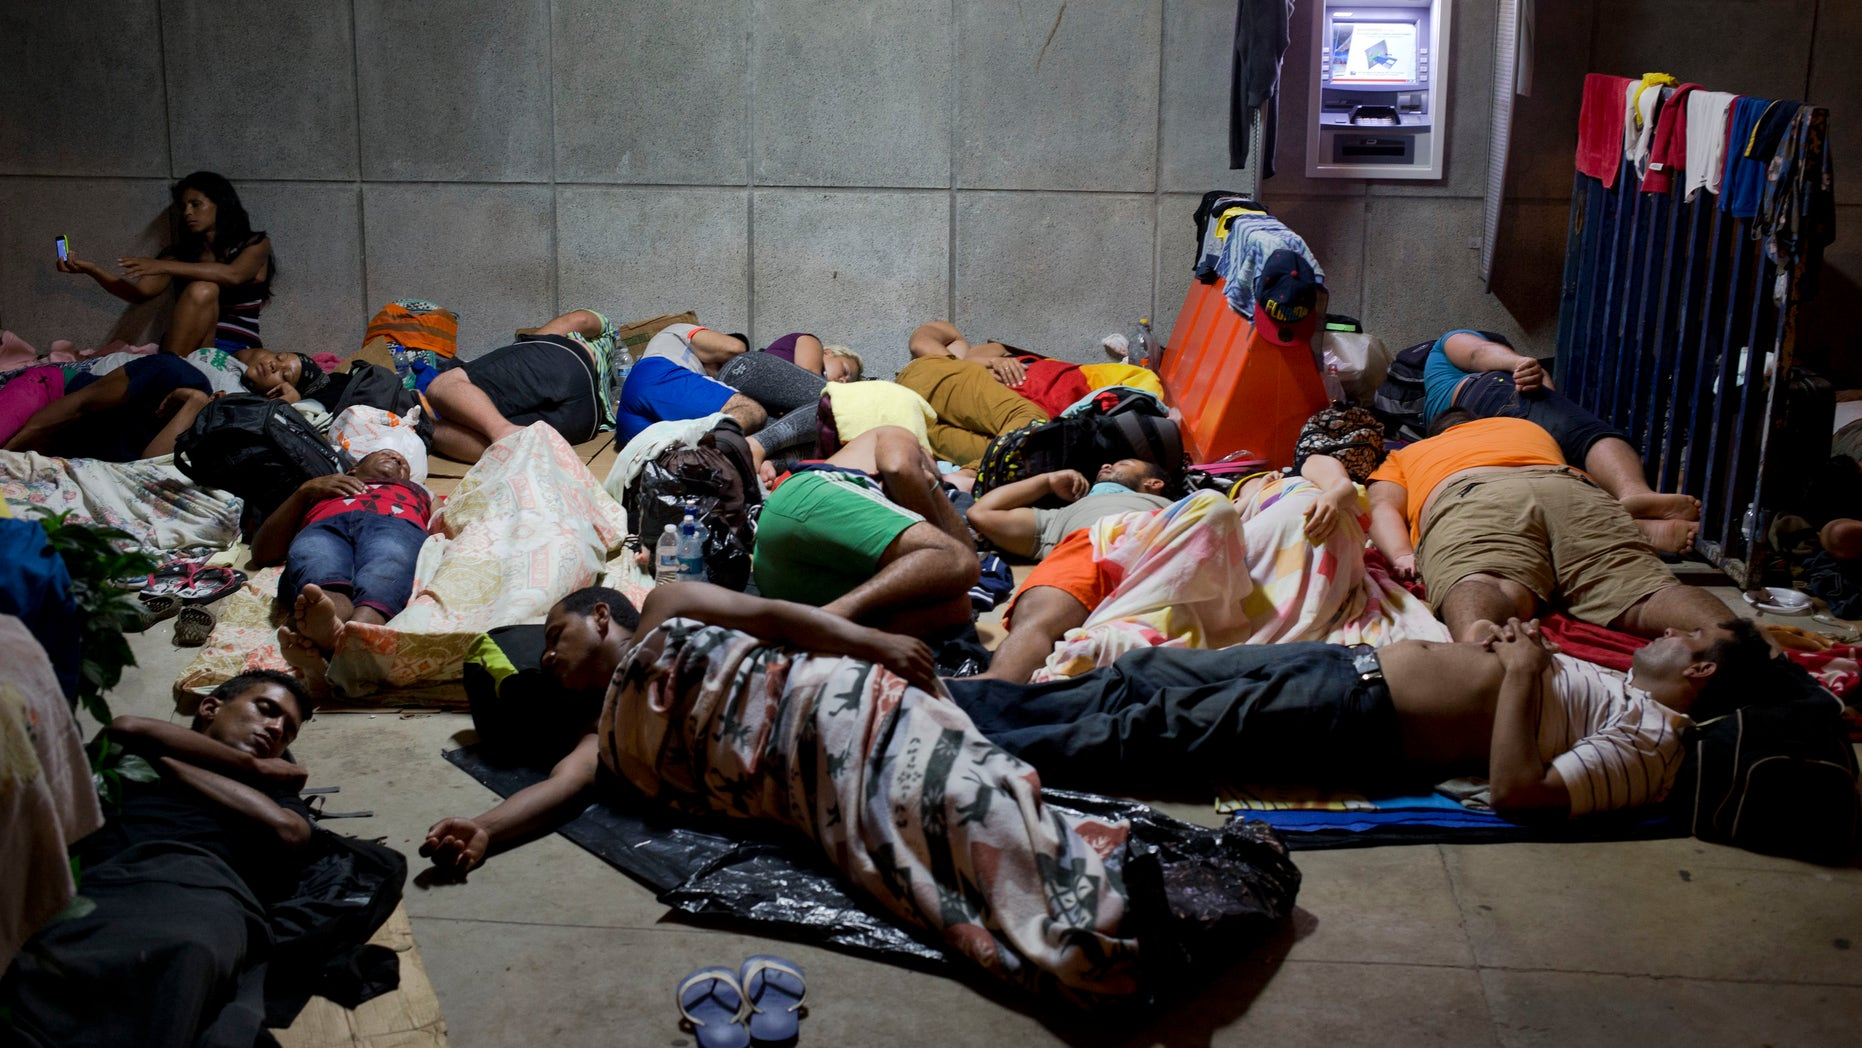 In this Saturday, Nov. 21, 2015 photo, a Cuban woman migrant uses her cell phone while other Cubans sleep, outside of the border control building in Penas Blancas, Costa Rica, on the border with Nicaragua. Some 45,000 Cubans will move by bus, boat, taxi and on foot from Ecuador and other South and Central American countries to the Texas and California borders this year, afraid that the normalization of relations between the U.S. and Cuba will mean an imminent end to special immigration privileges that date to the opening of the Cold War. (AP Photo/Esteban Felix)